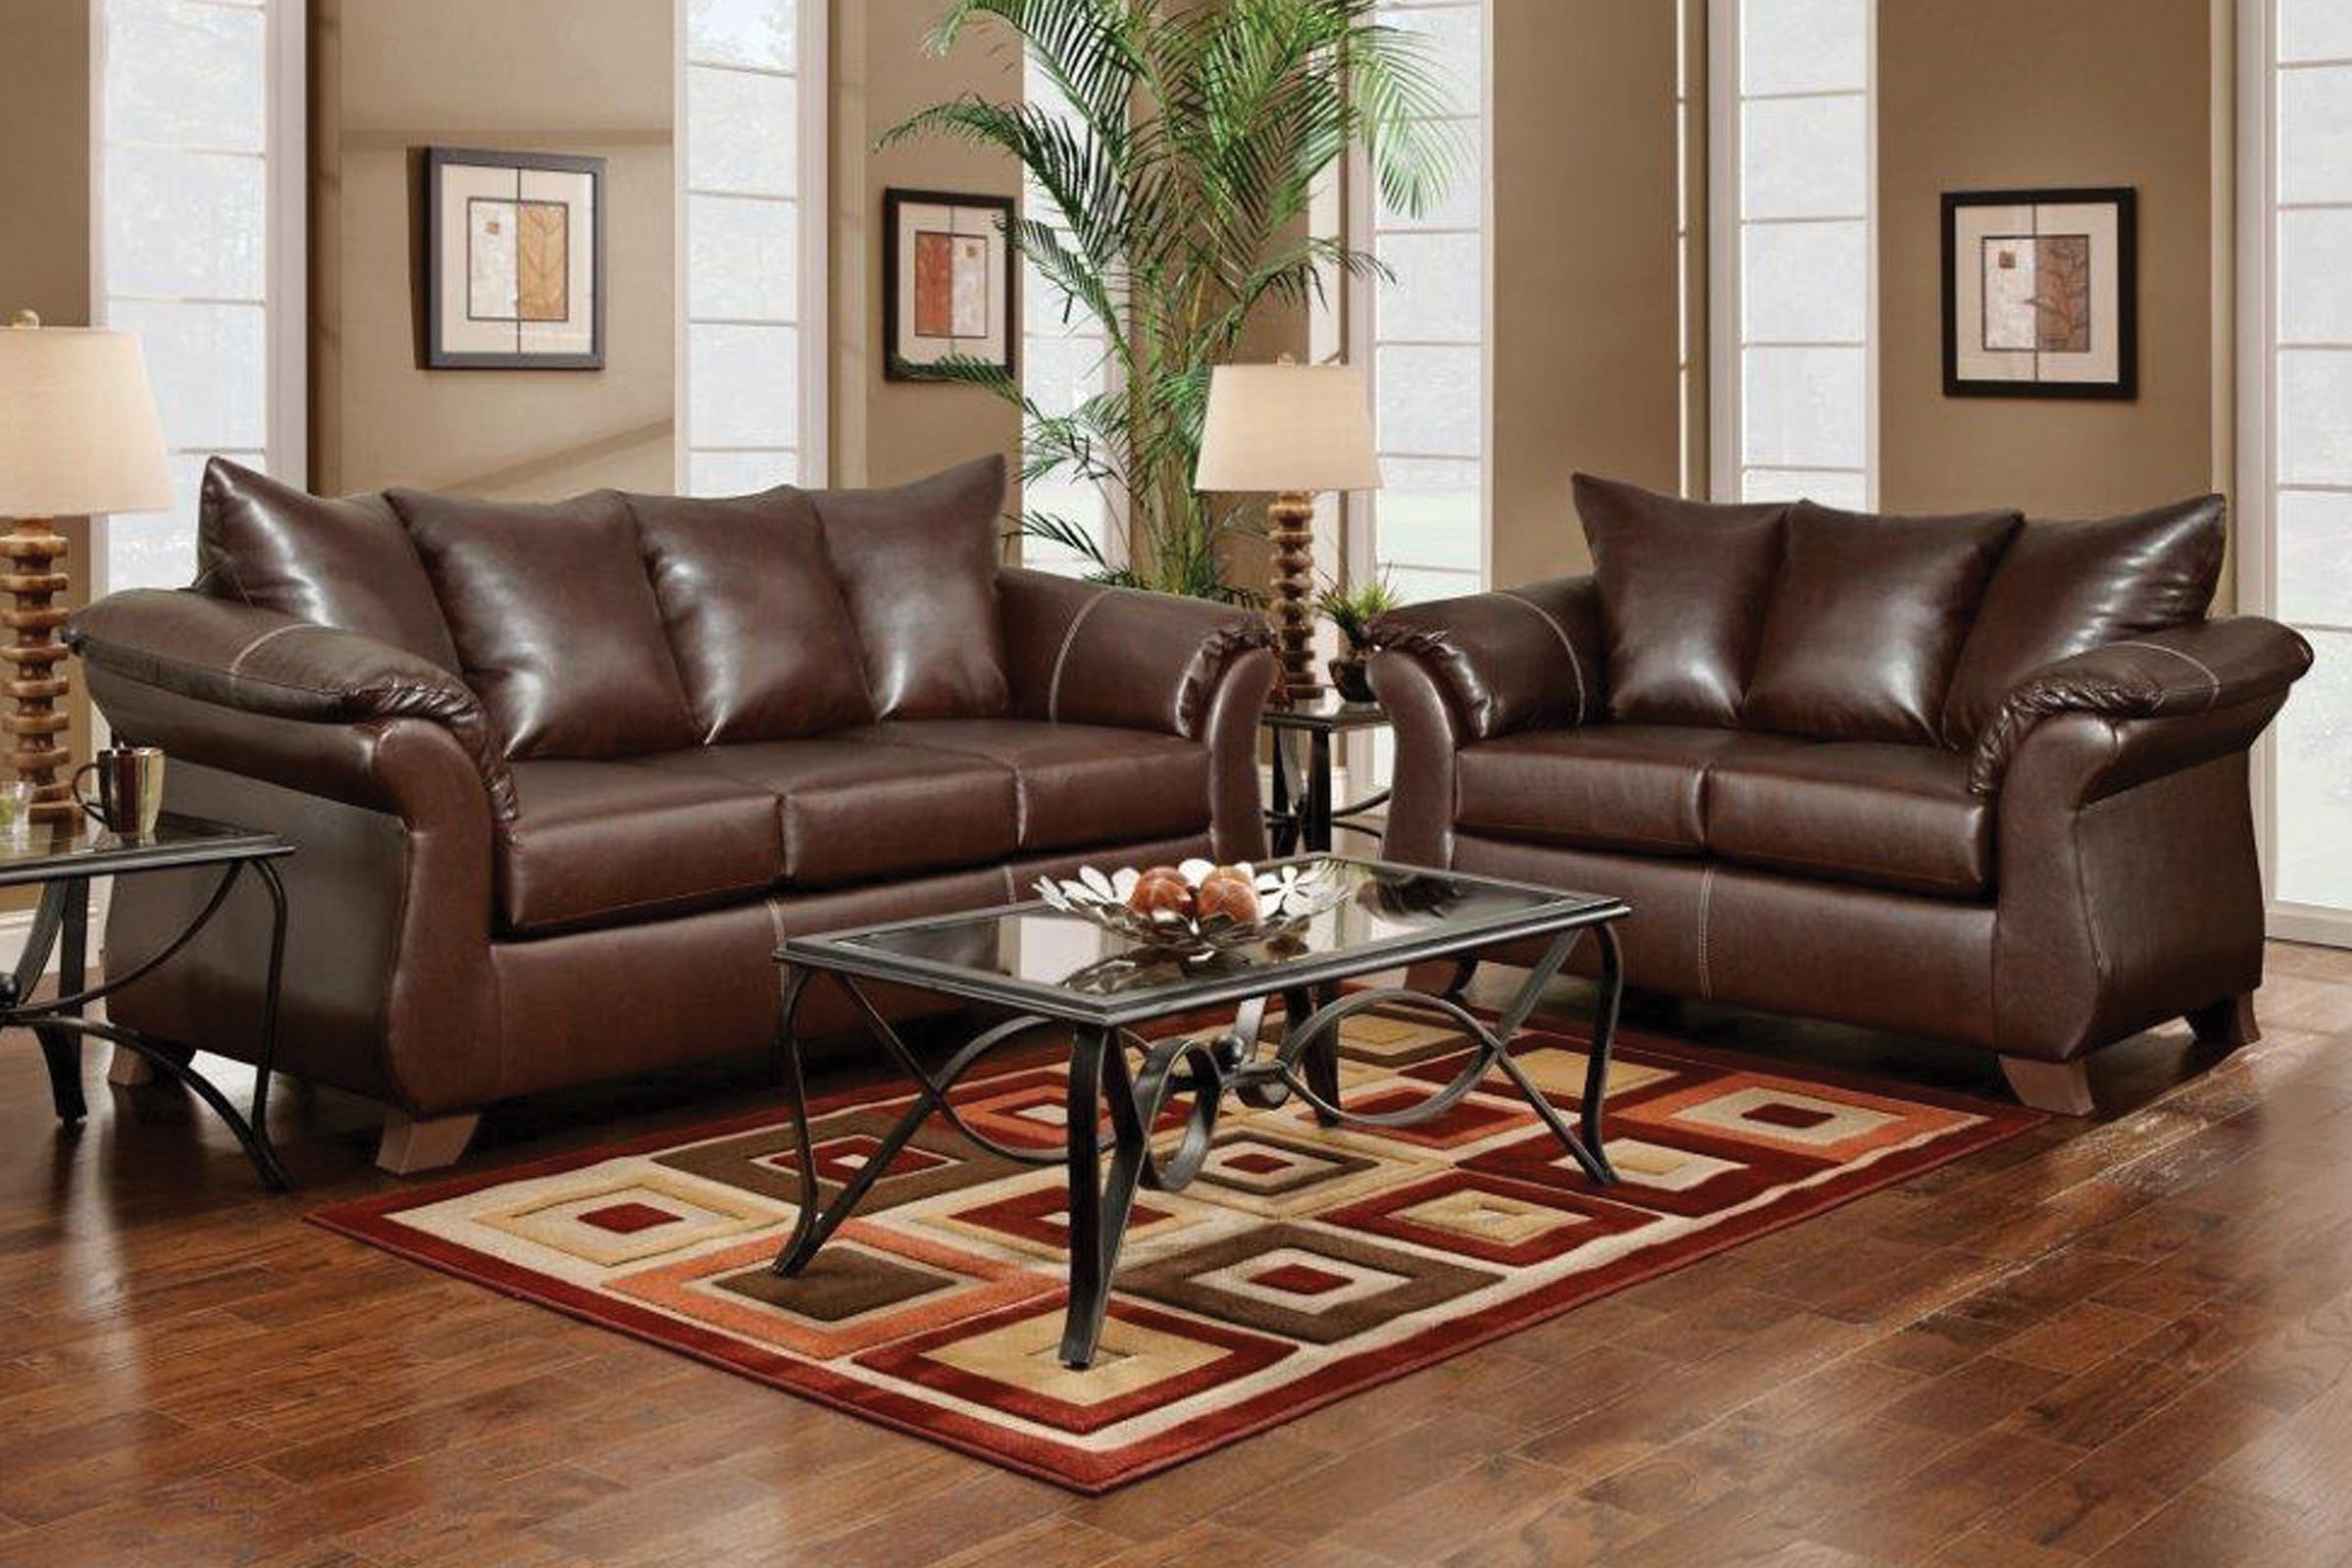 Bailey Leather Sofa & Loveseat